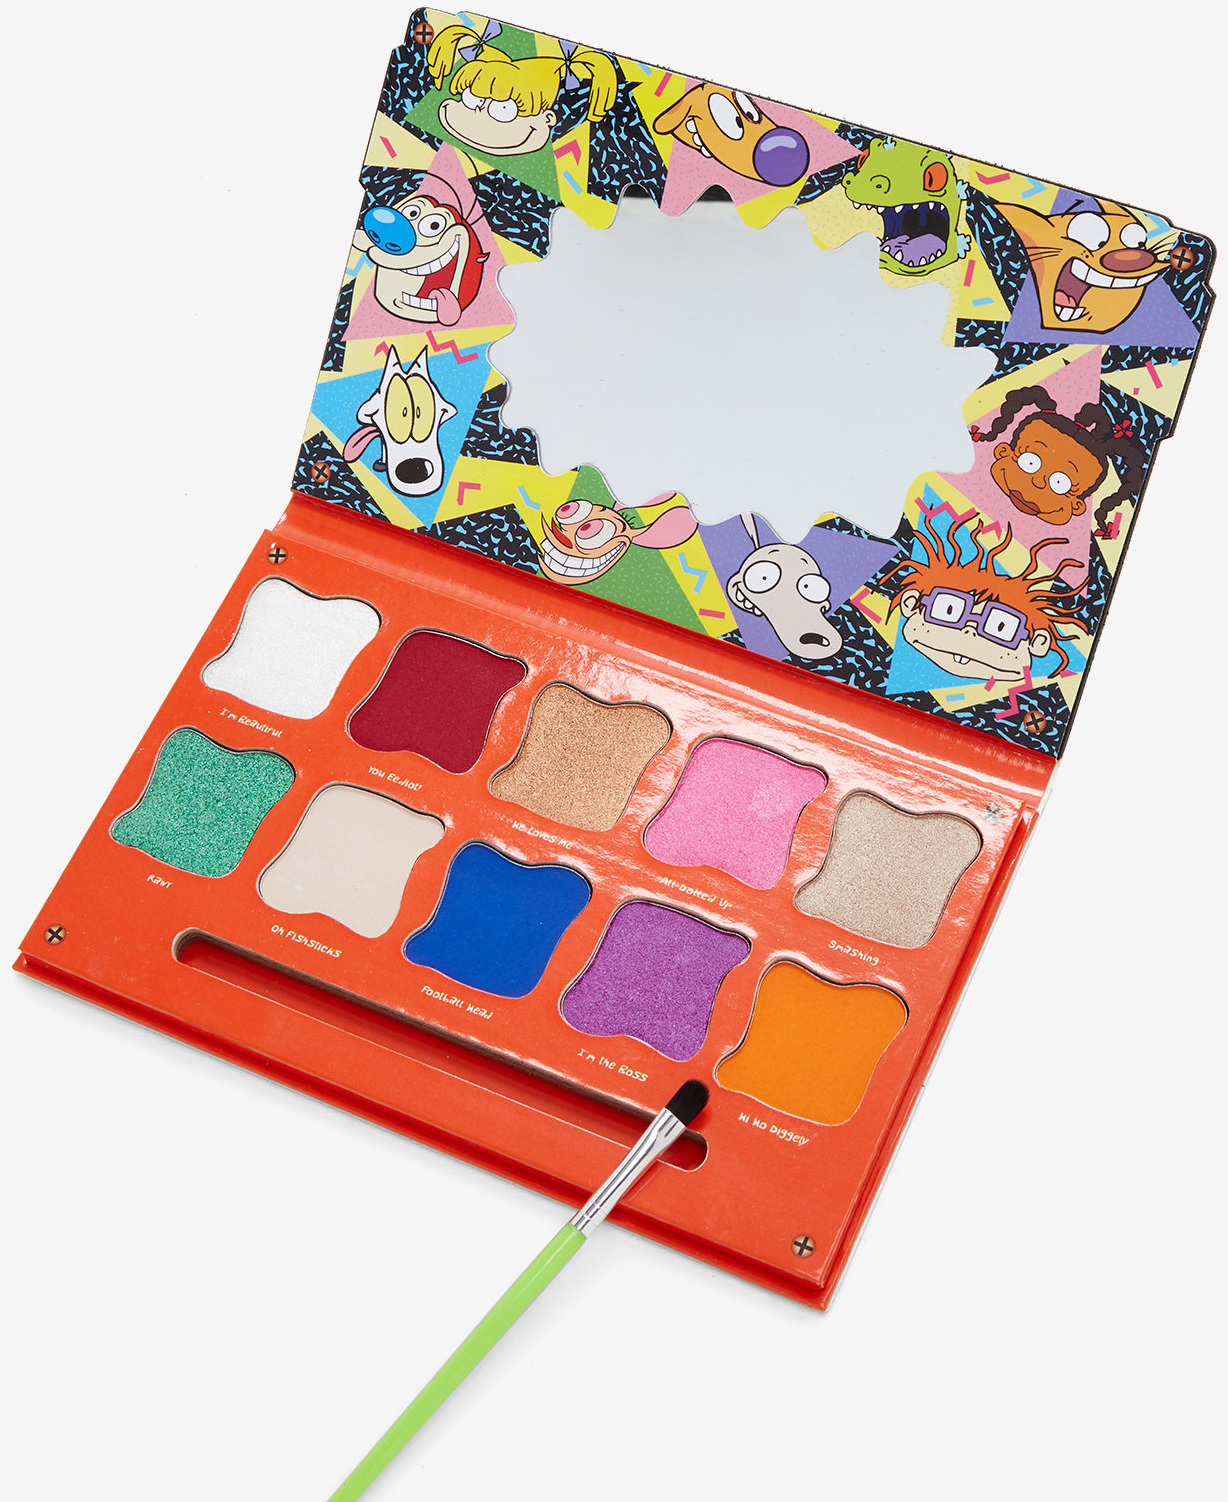 Rugrats Dog Life: NickALive!: Nickelodeon Has Made A '90s Nick Eye Shadow